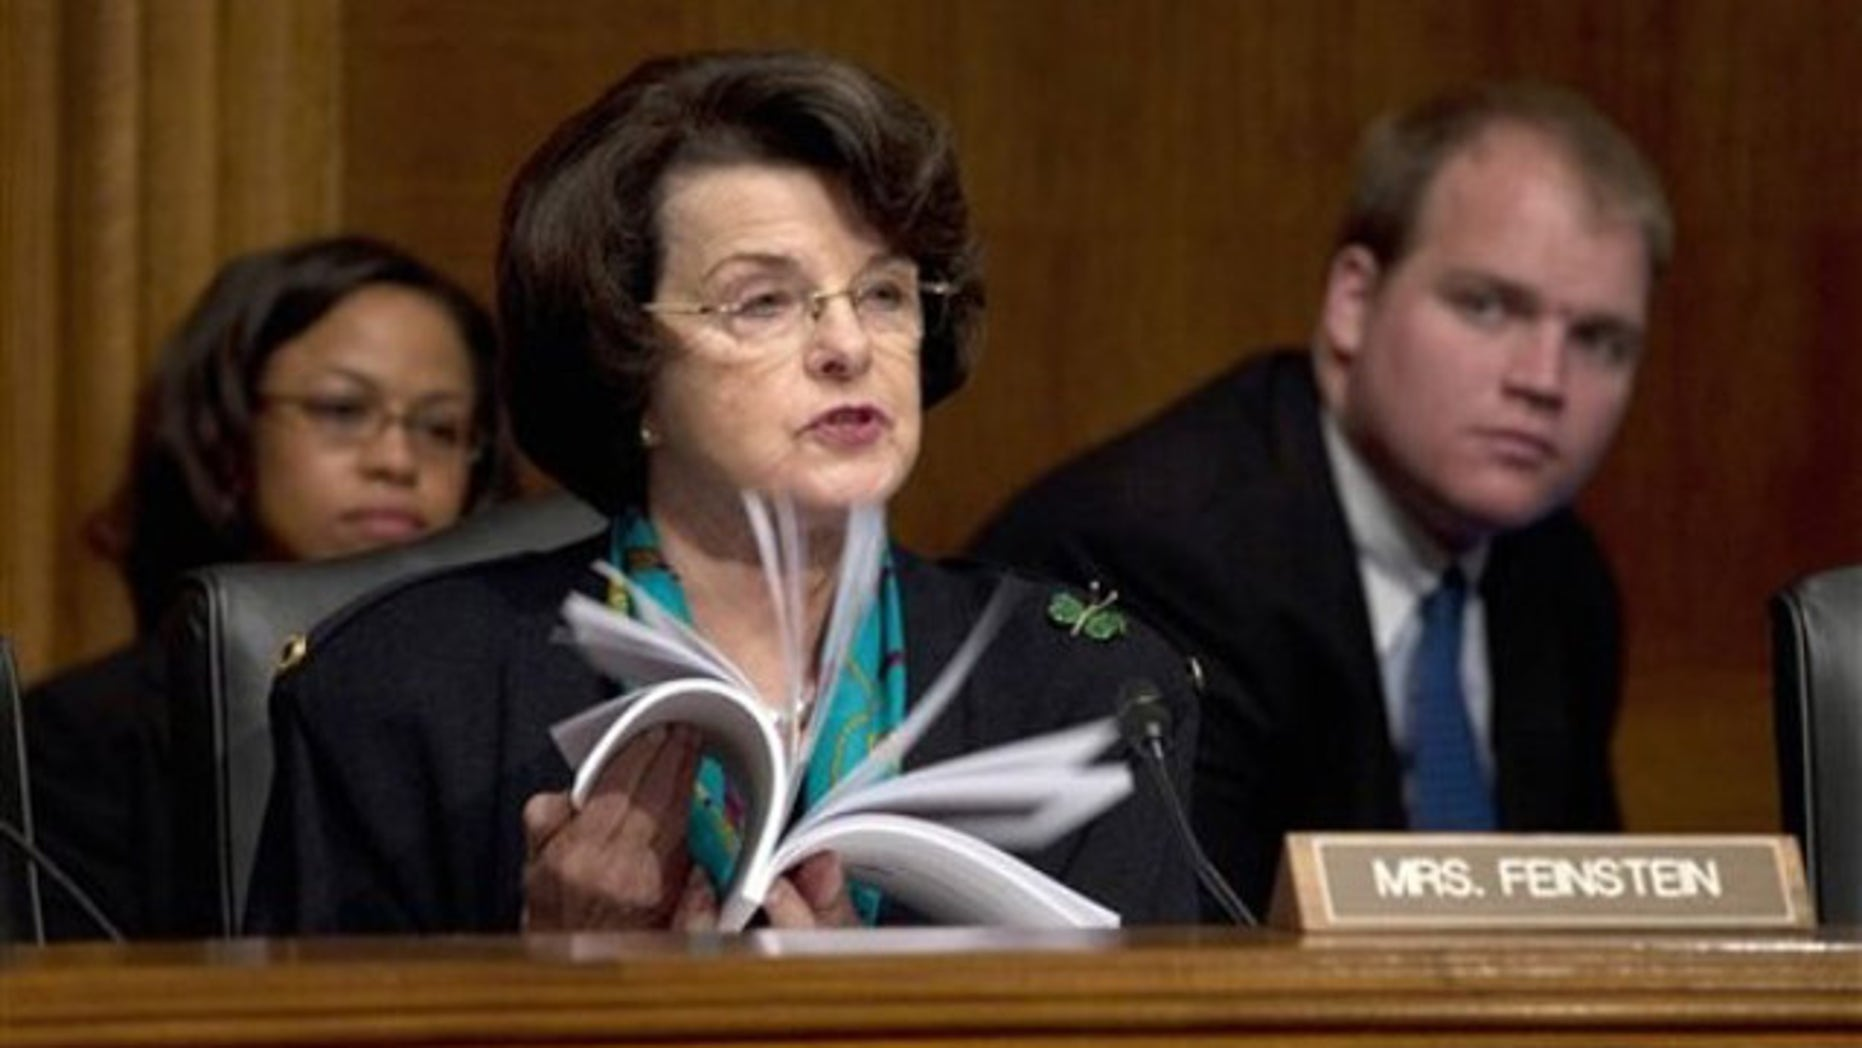 Feinstein Speaks Out On Iran >> Feinstein Questions Whether Iran Backing More Plots In Wake Of